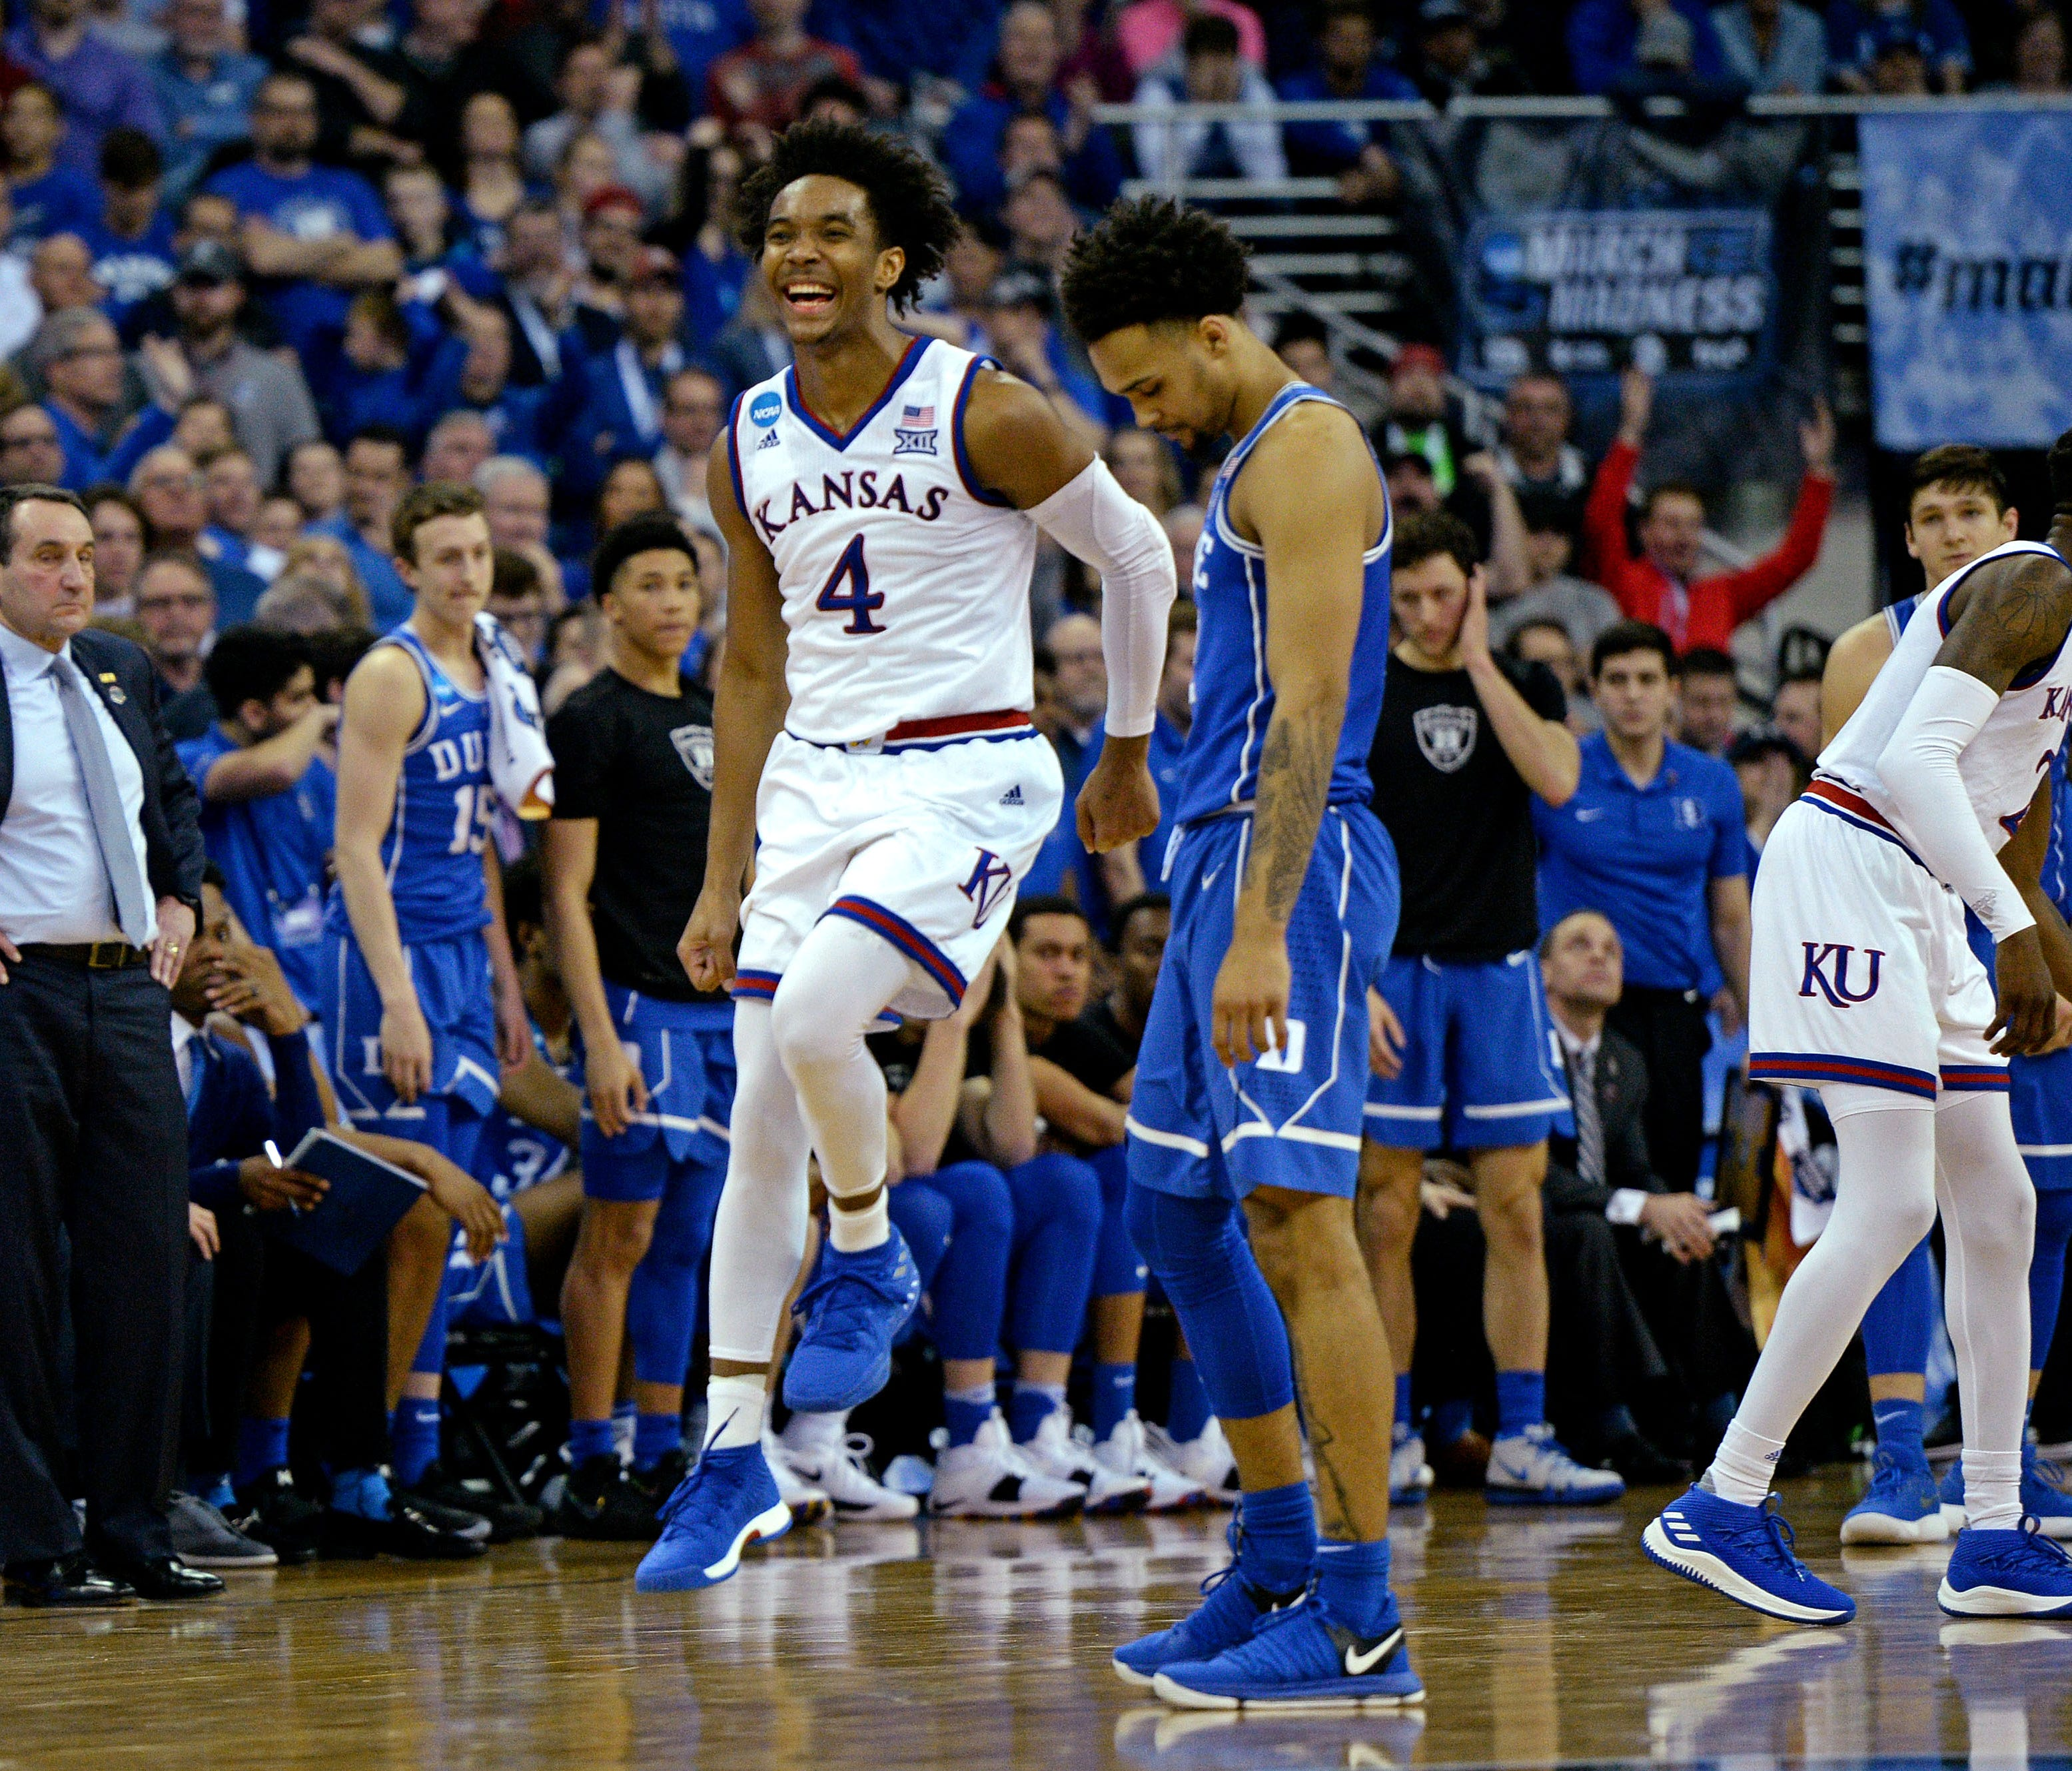 Kanasa guard Devonte' Graham celebrates after the Jayhawks beat Duke in the championship game of the Midwest regional of the 2018 NCAA tournament at CenturyLink Center.